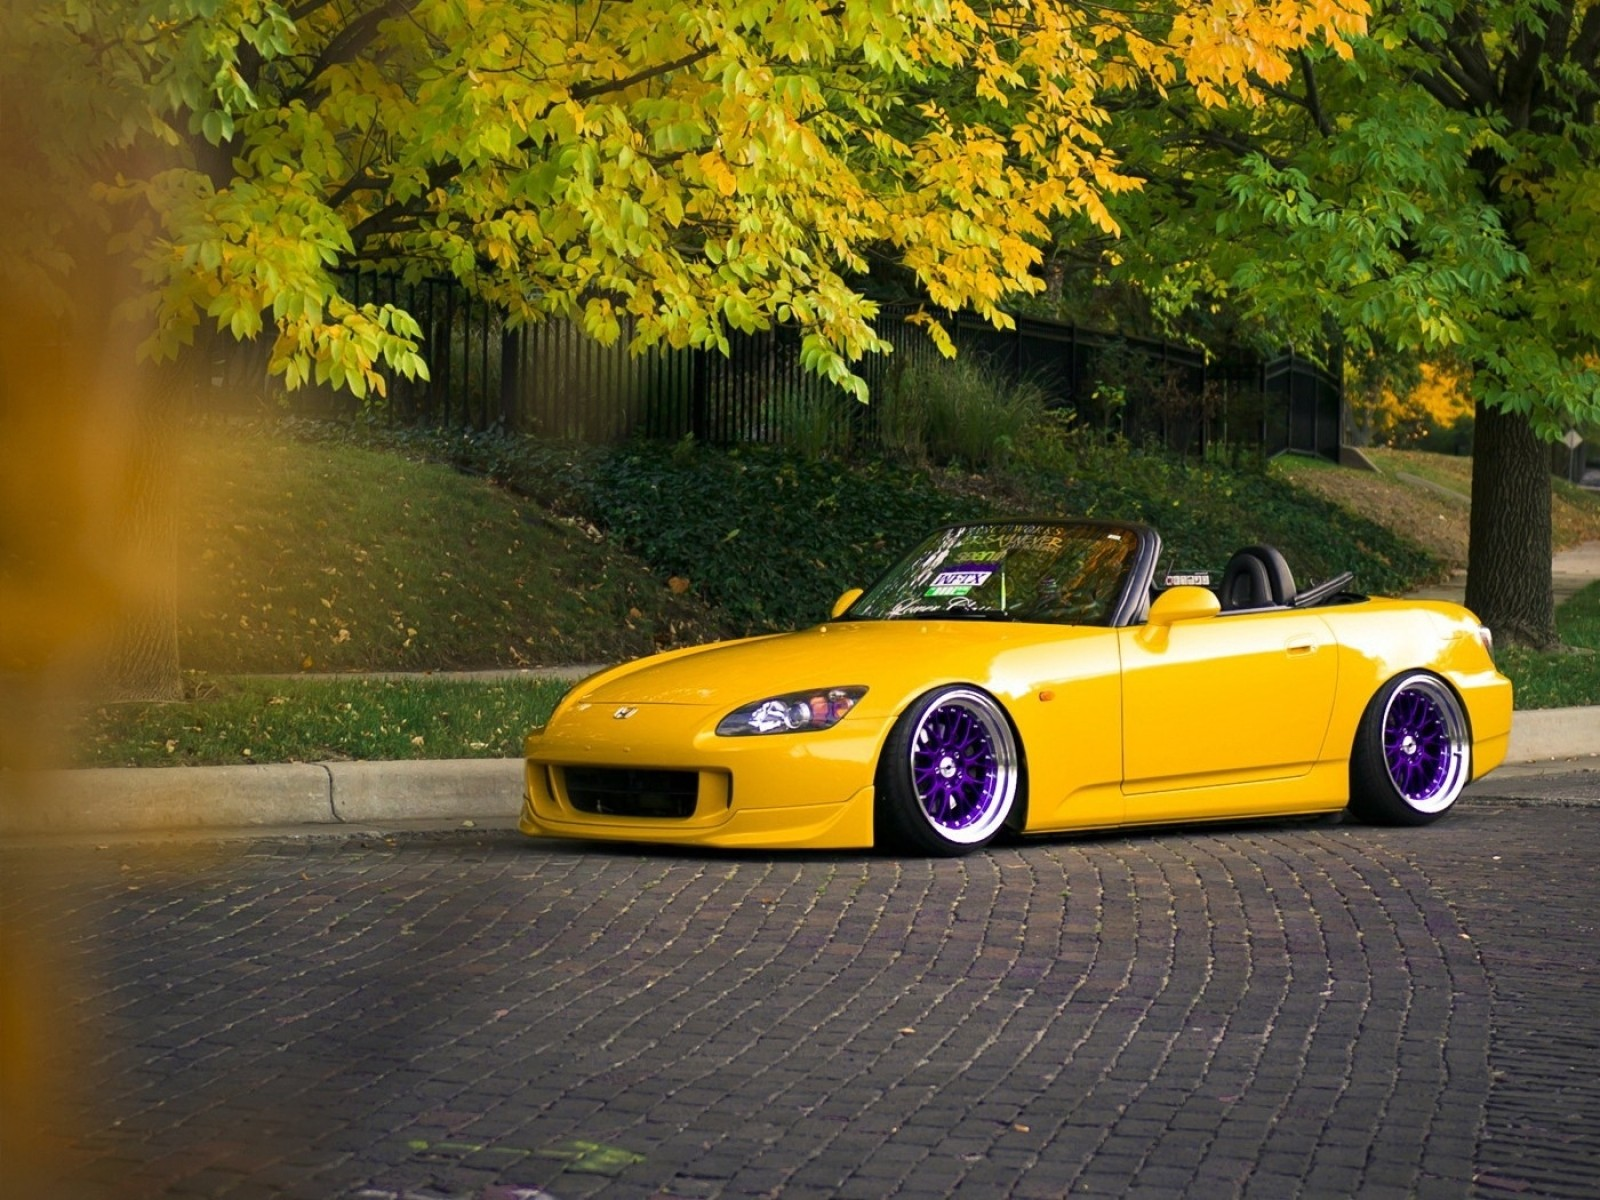 Honda S2000 jdm Hella Flush wallpaper backgroundHonda Jdm Wallpaper